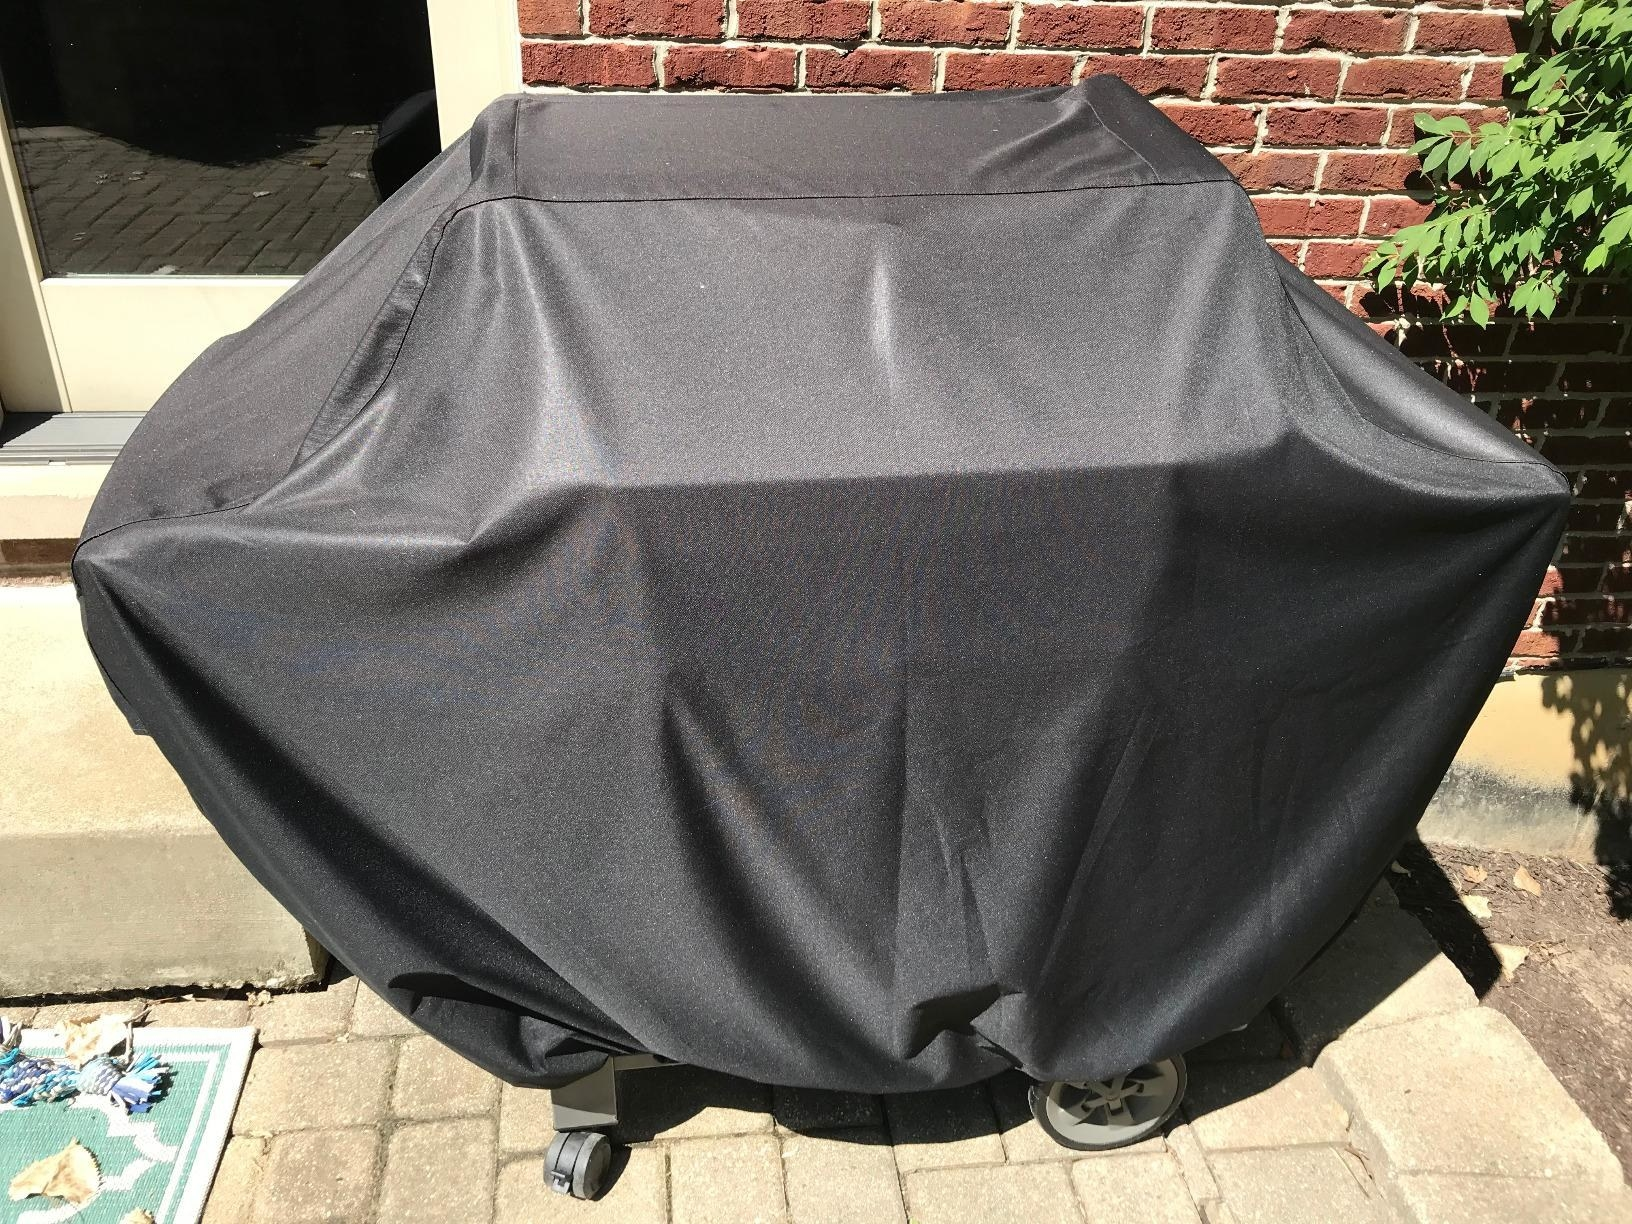 a reviewer's grill covered in a black tarp-like cover